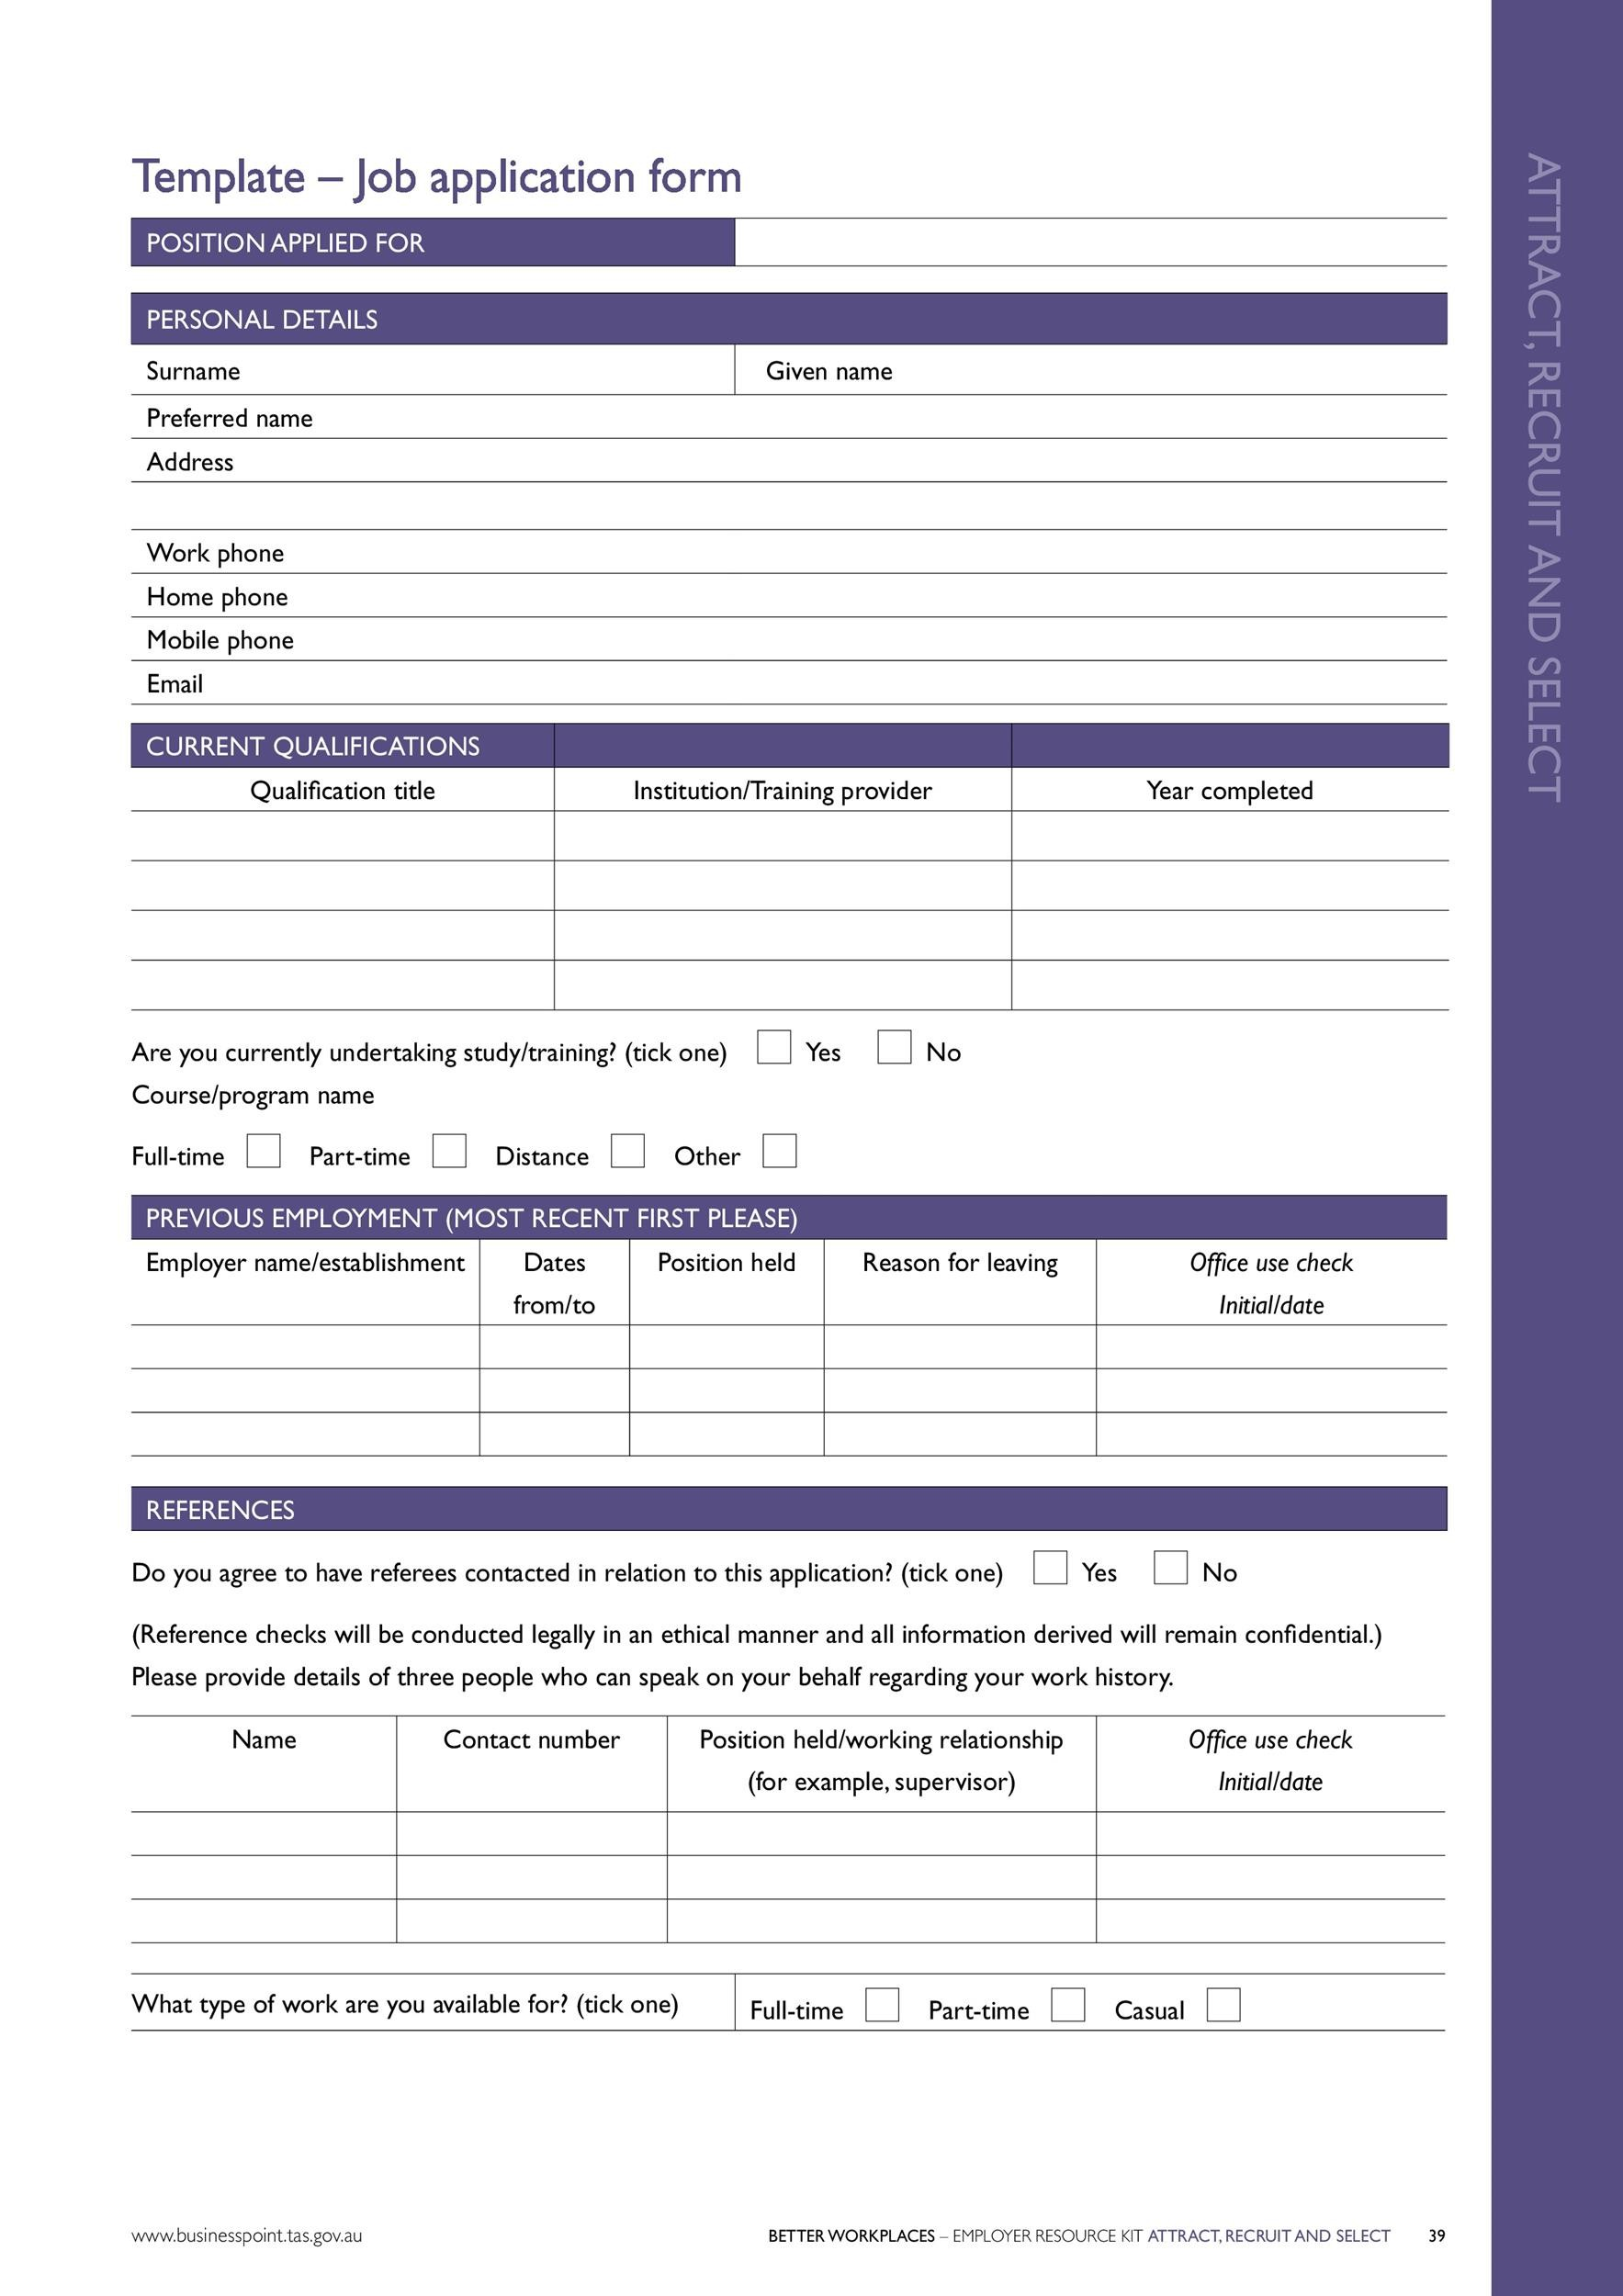 Free employment application template 09